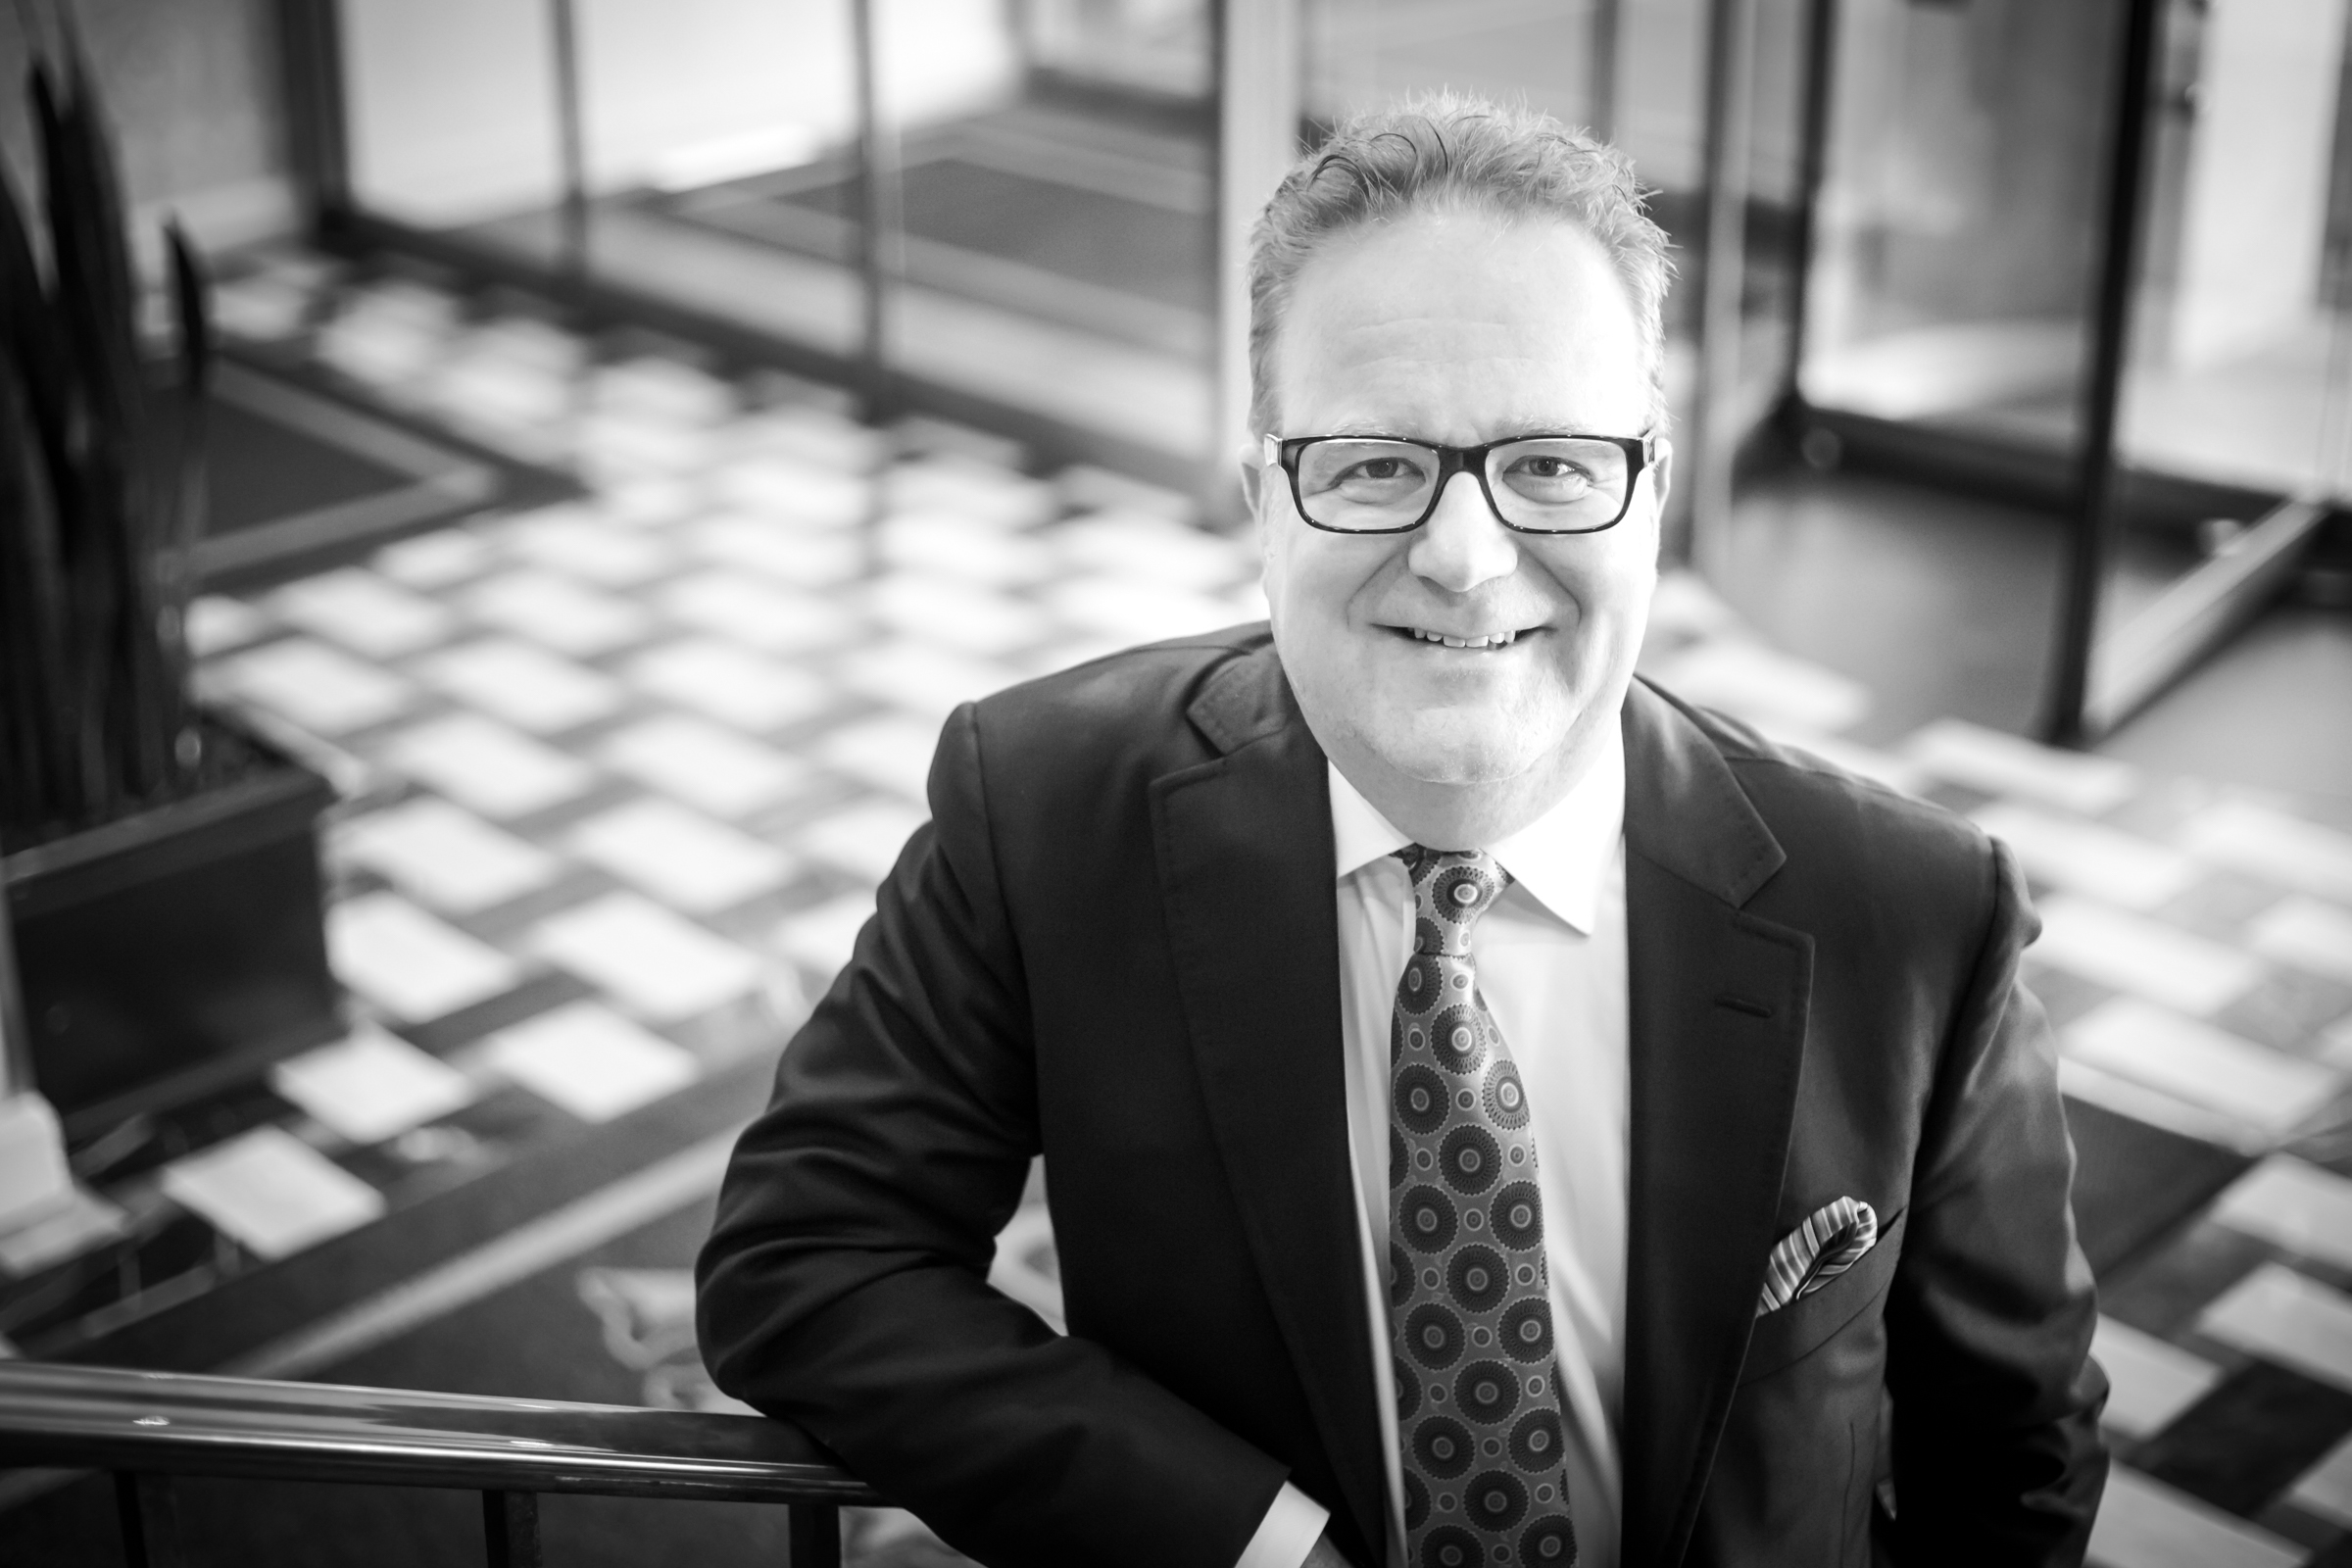 Black and white photograph of Allan Bush, a smiling man in suit and glasses standing partway up a staircase with a tiled lobby visible in the background